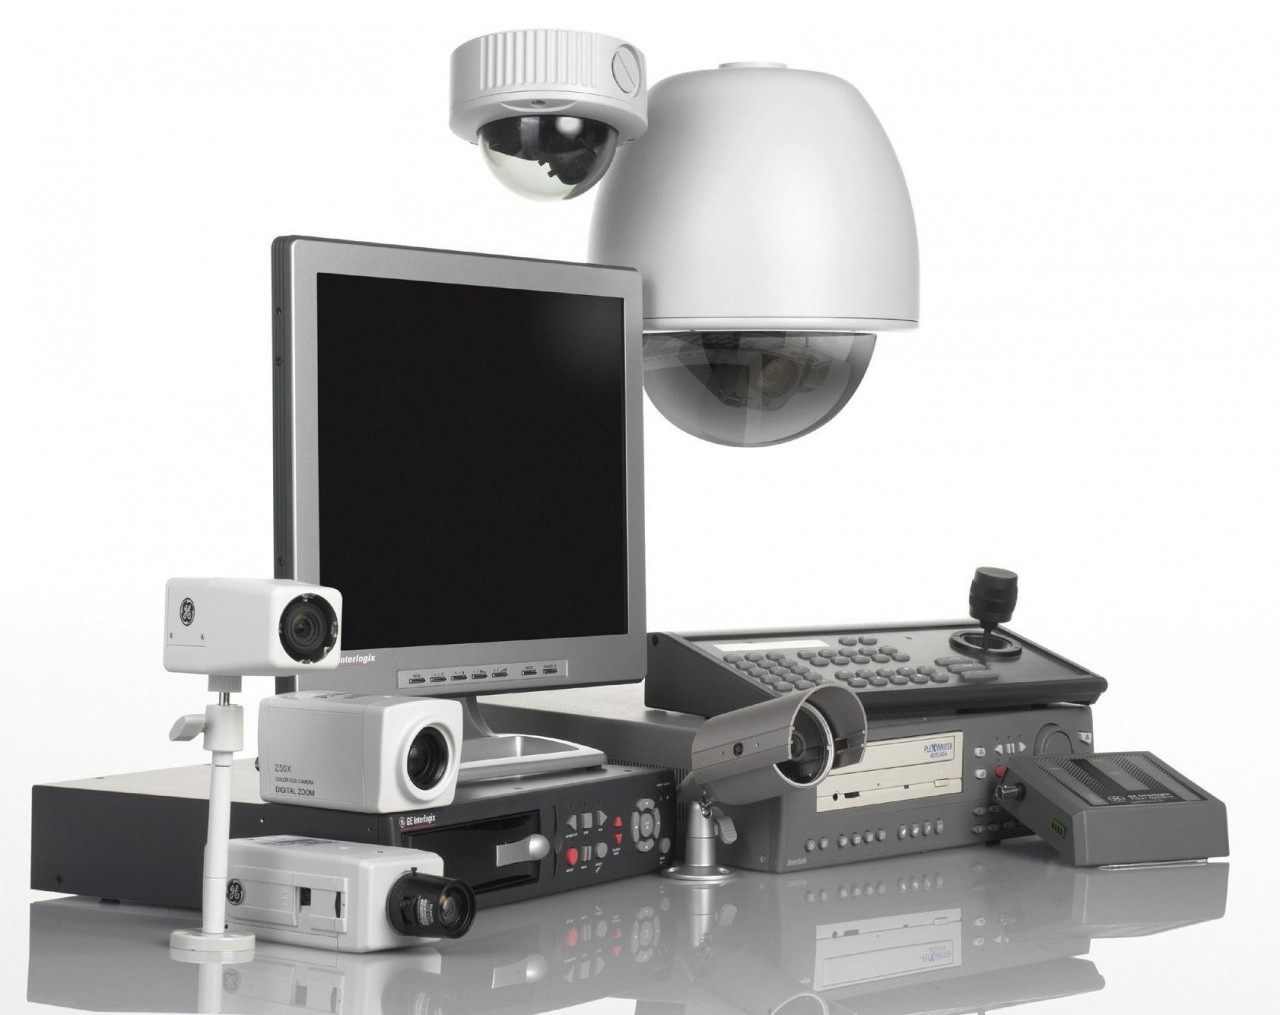 CCTV Cheap Quotes Cameras Security Surveillance System For Sale Cash Purchase Or Rent